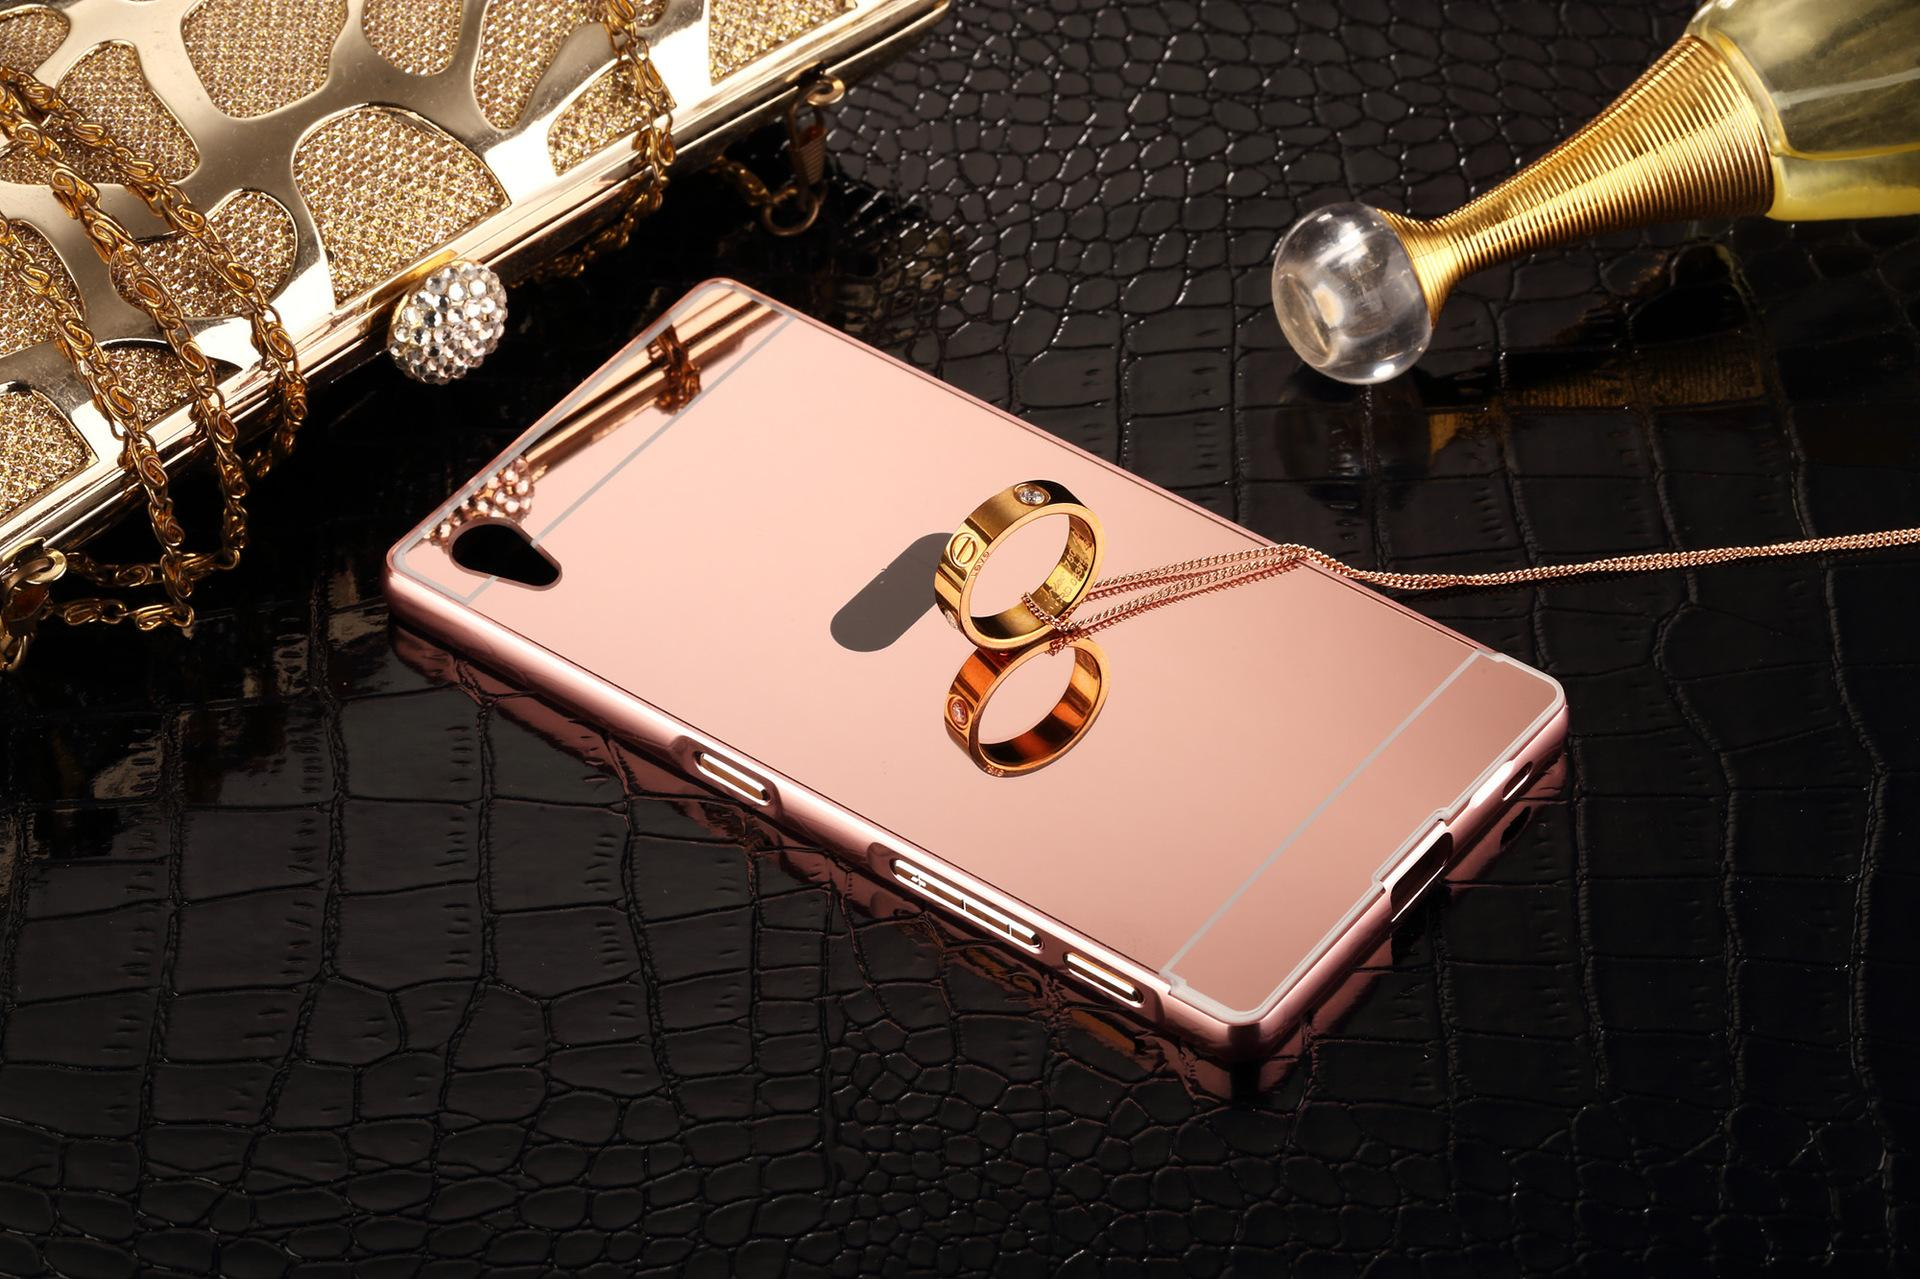 Mirror Luxury Metal Aluminum Bumper Frame PC Back Cover for Sony Xperia Z Z1 Z2 Z3 Z4 Z5 Z3 PACT Z5 PACT M4 M5 C5 line with $2 08 Piece on